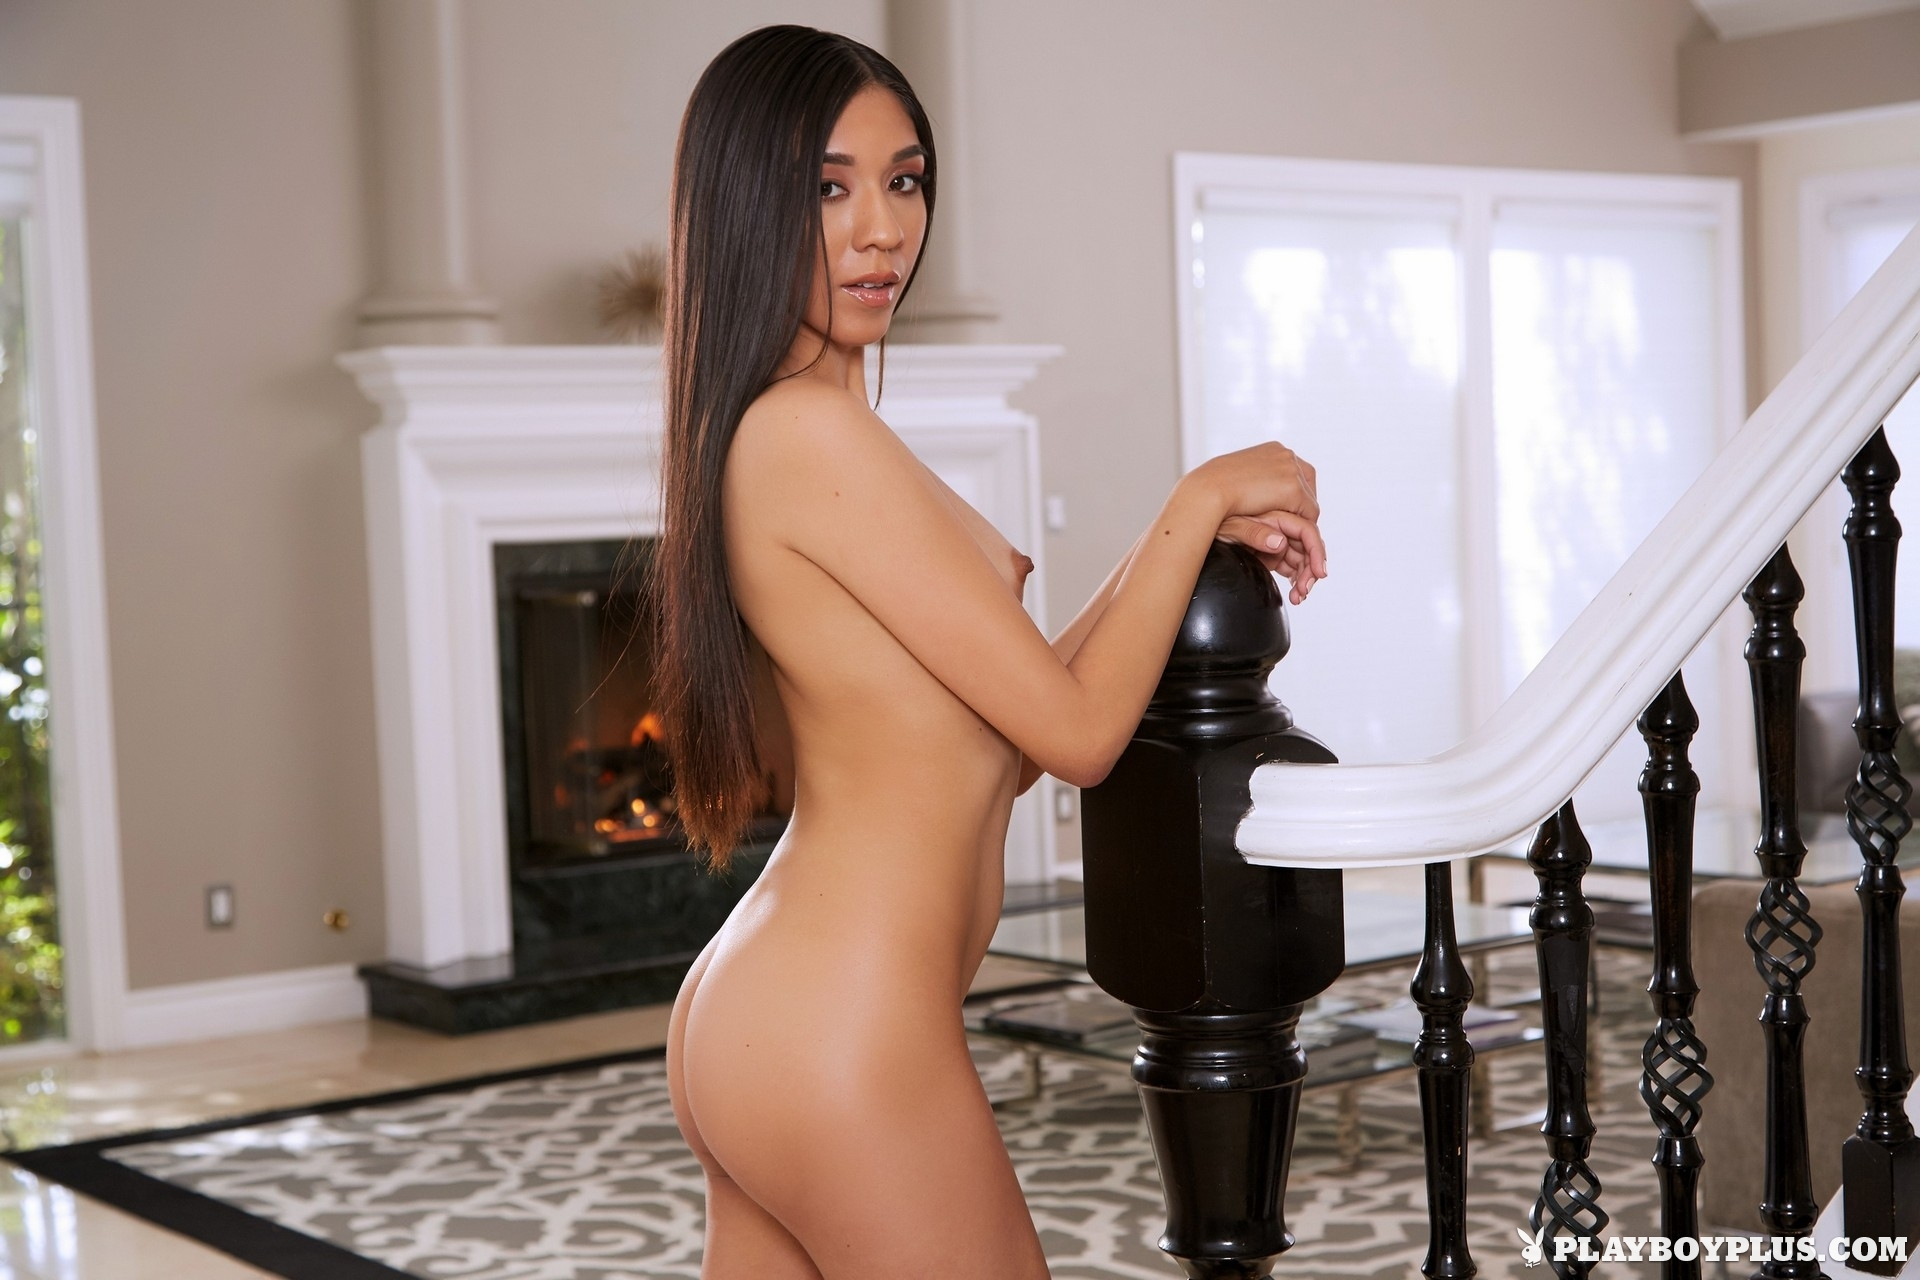 Playboy Plus Victoria Antoinette In Soft Approach (18)